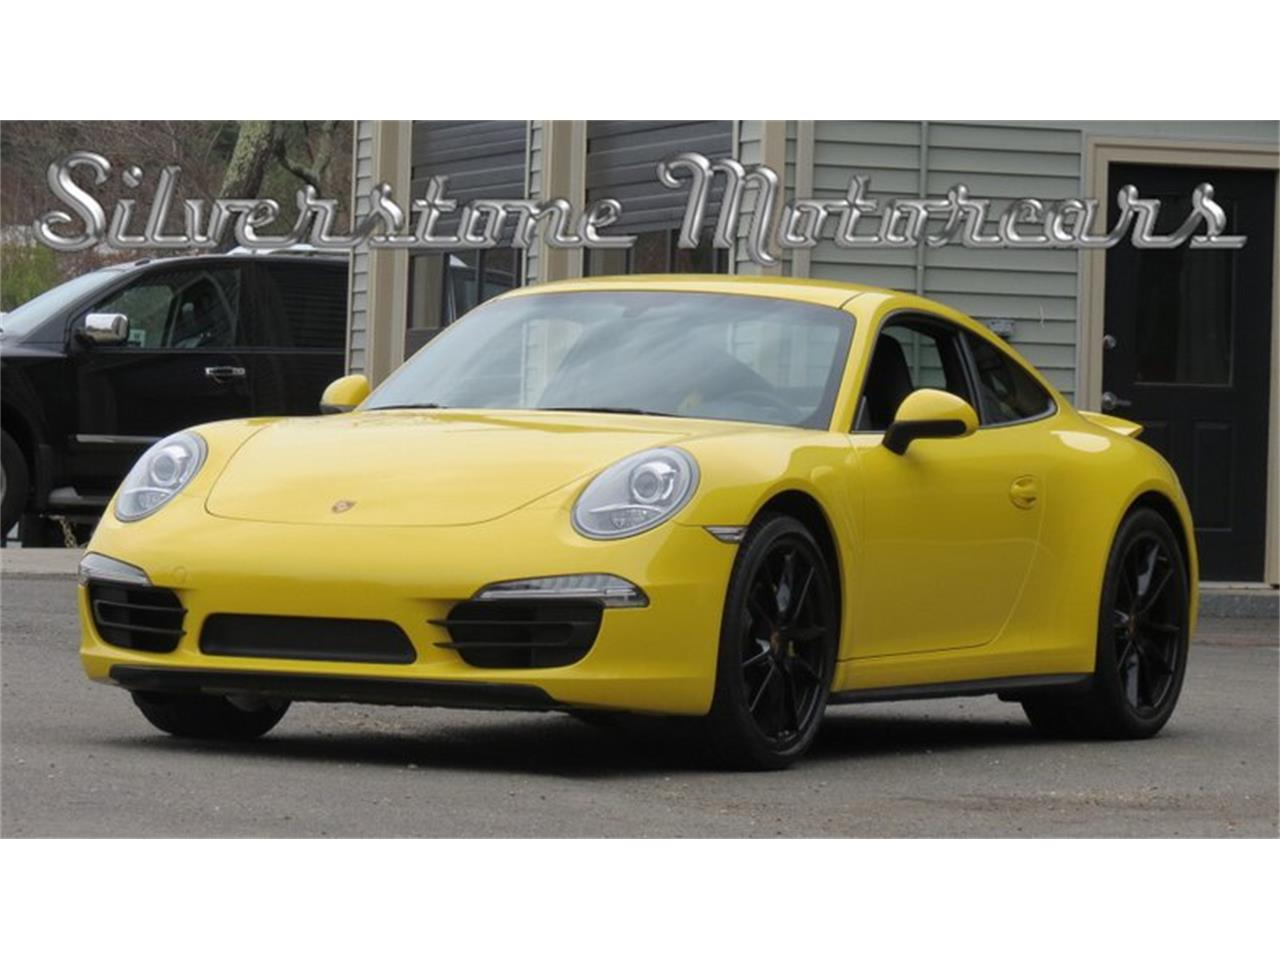 Large Picture of 2013 Porsche 911 Carrera located in Massachusetts - $82,000.00 Offered by Silverstone Motorcars - G0CQ